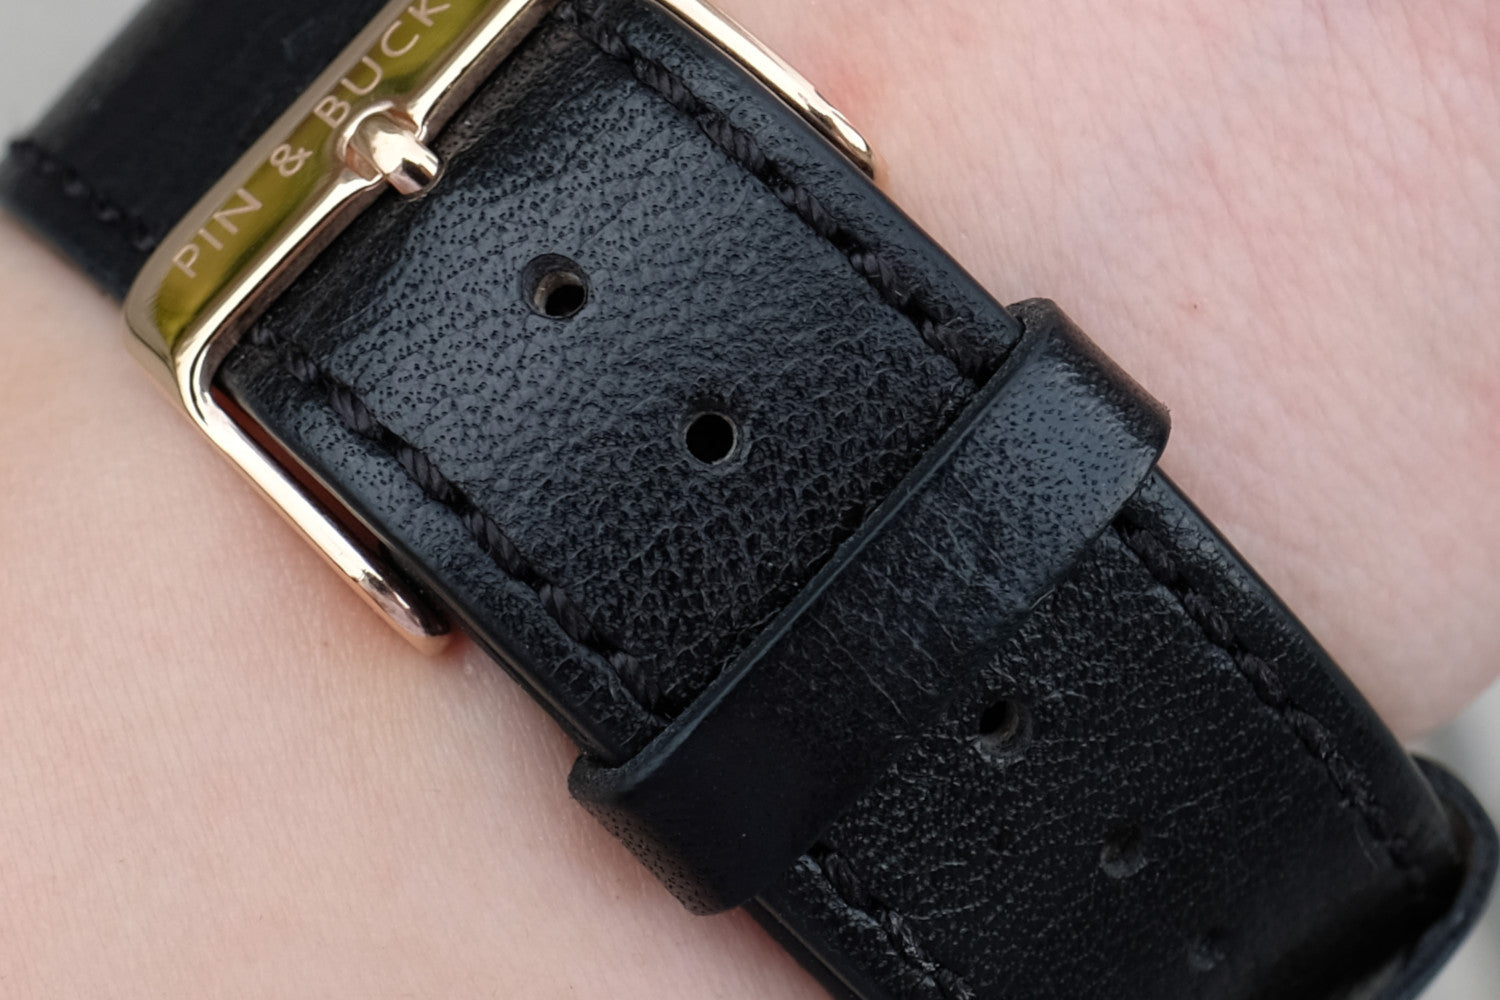 Pin and Buckle Apple Watch Bands - Luxe - Full Grain Vegetable Tanned Leather Apple Watch Band - Nero Black - Full Grain Italian Vegetable Tanned Leather